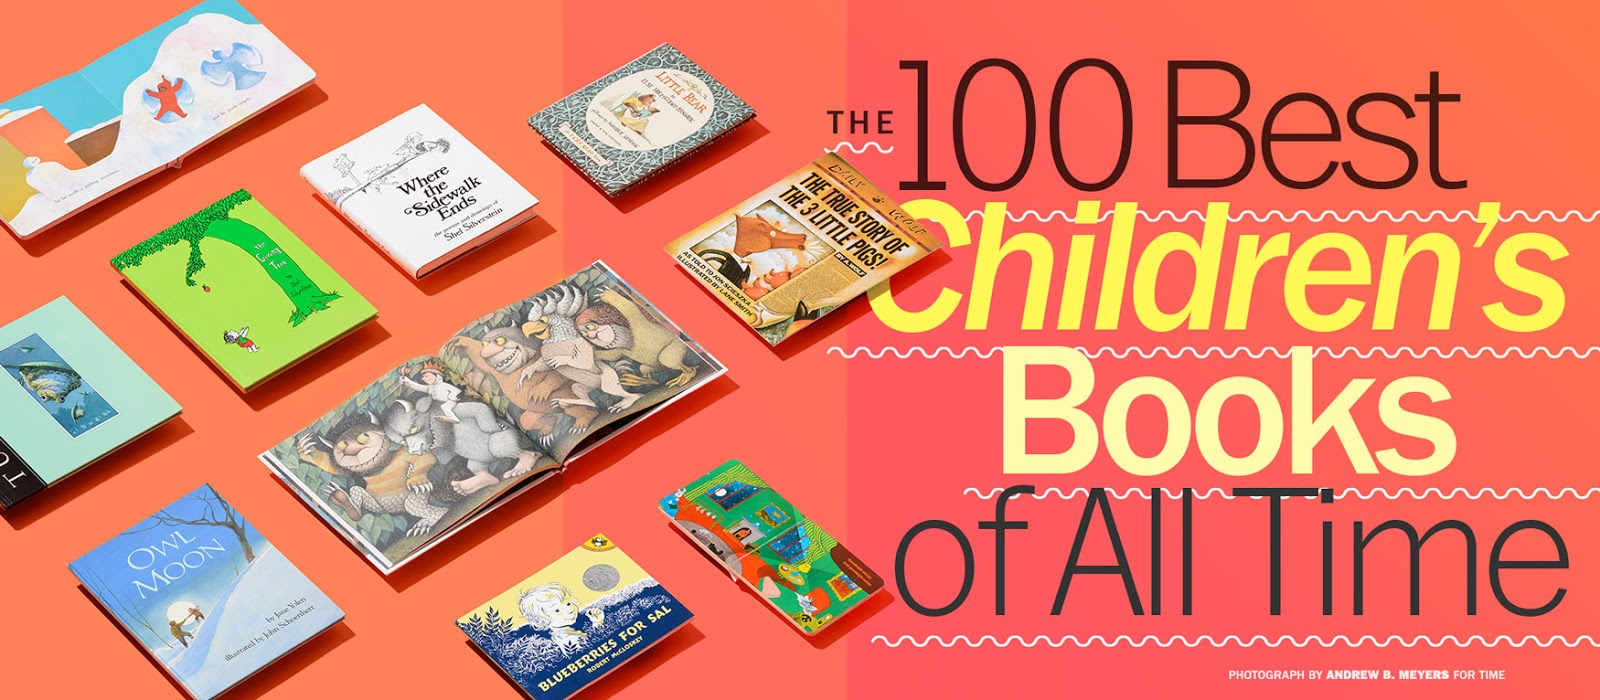 The Book Crowd: Time's 100 Best Children's Books of All Time